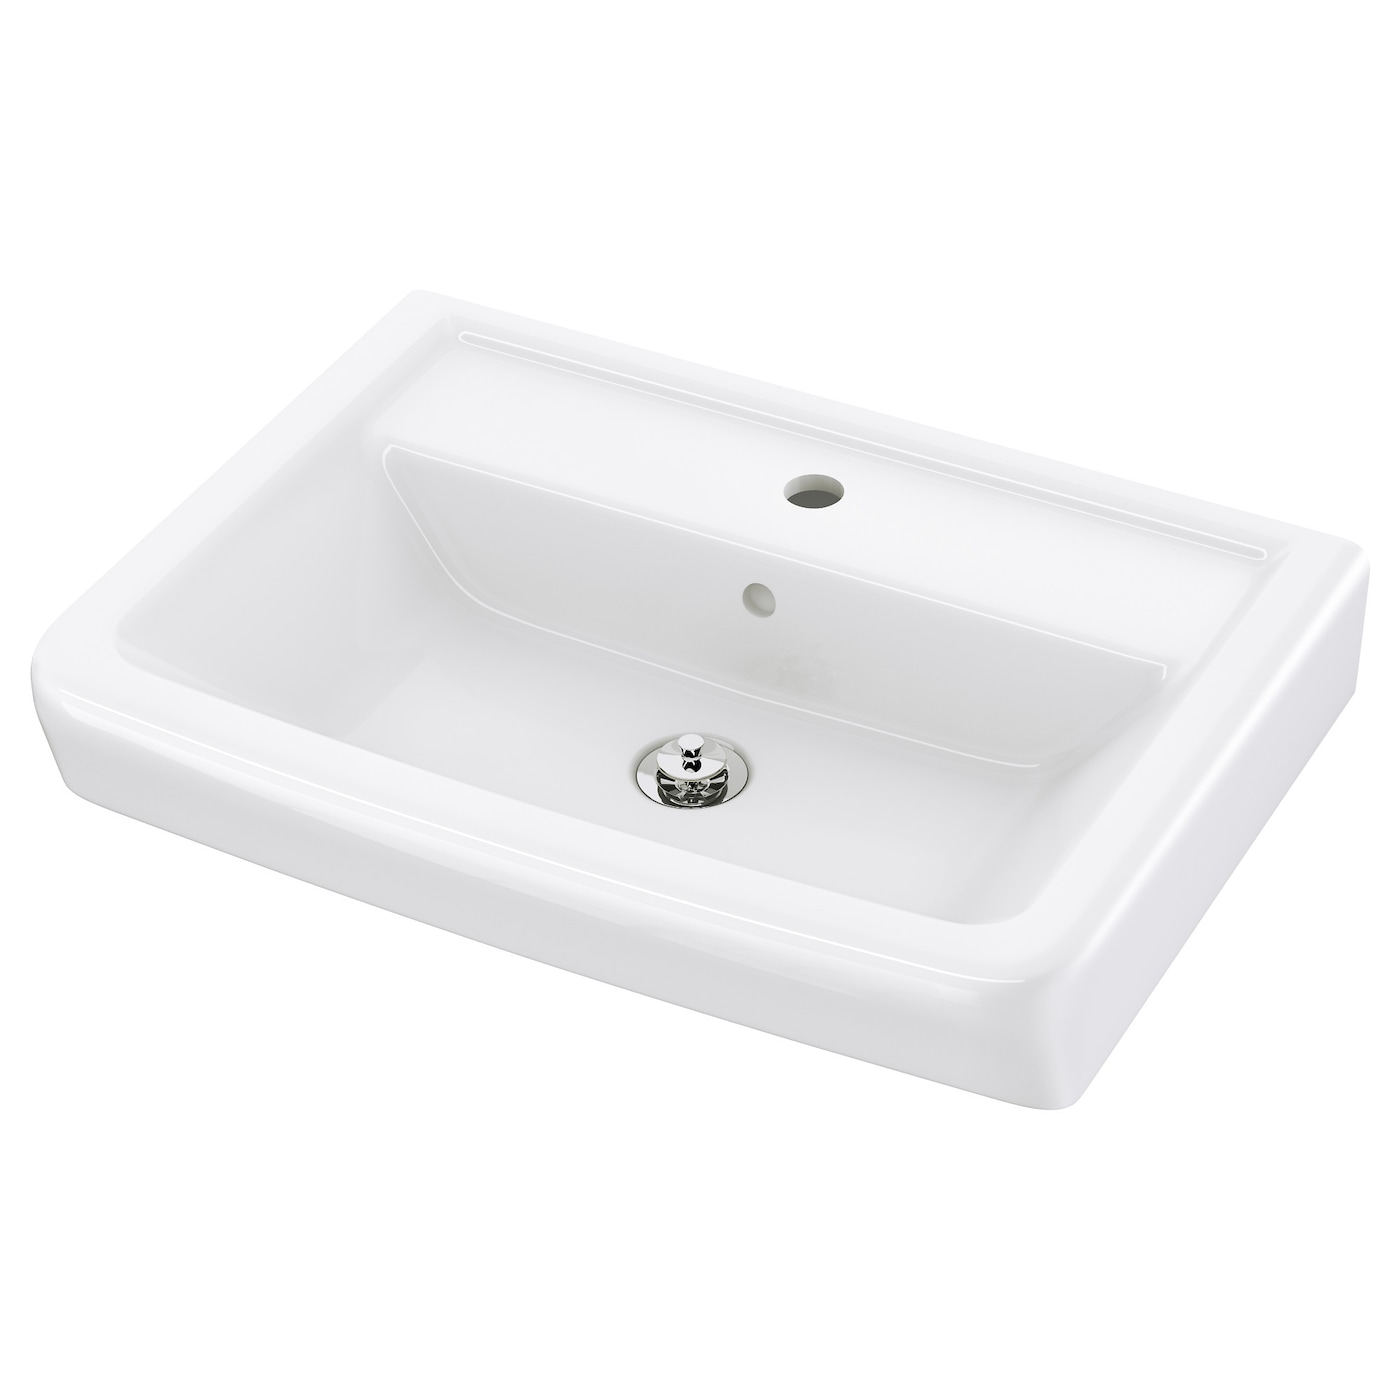 Bathroom Sinks & Wash Basins | IKEA Ireland - Dublin